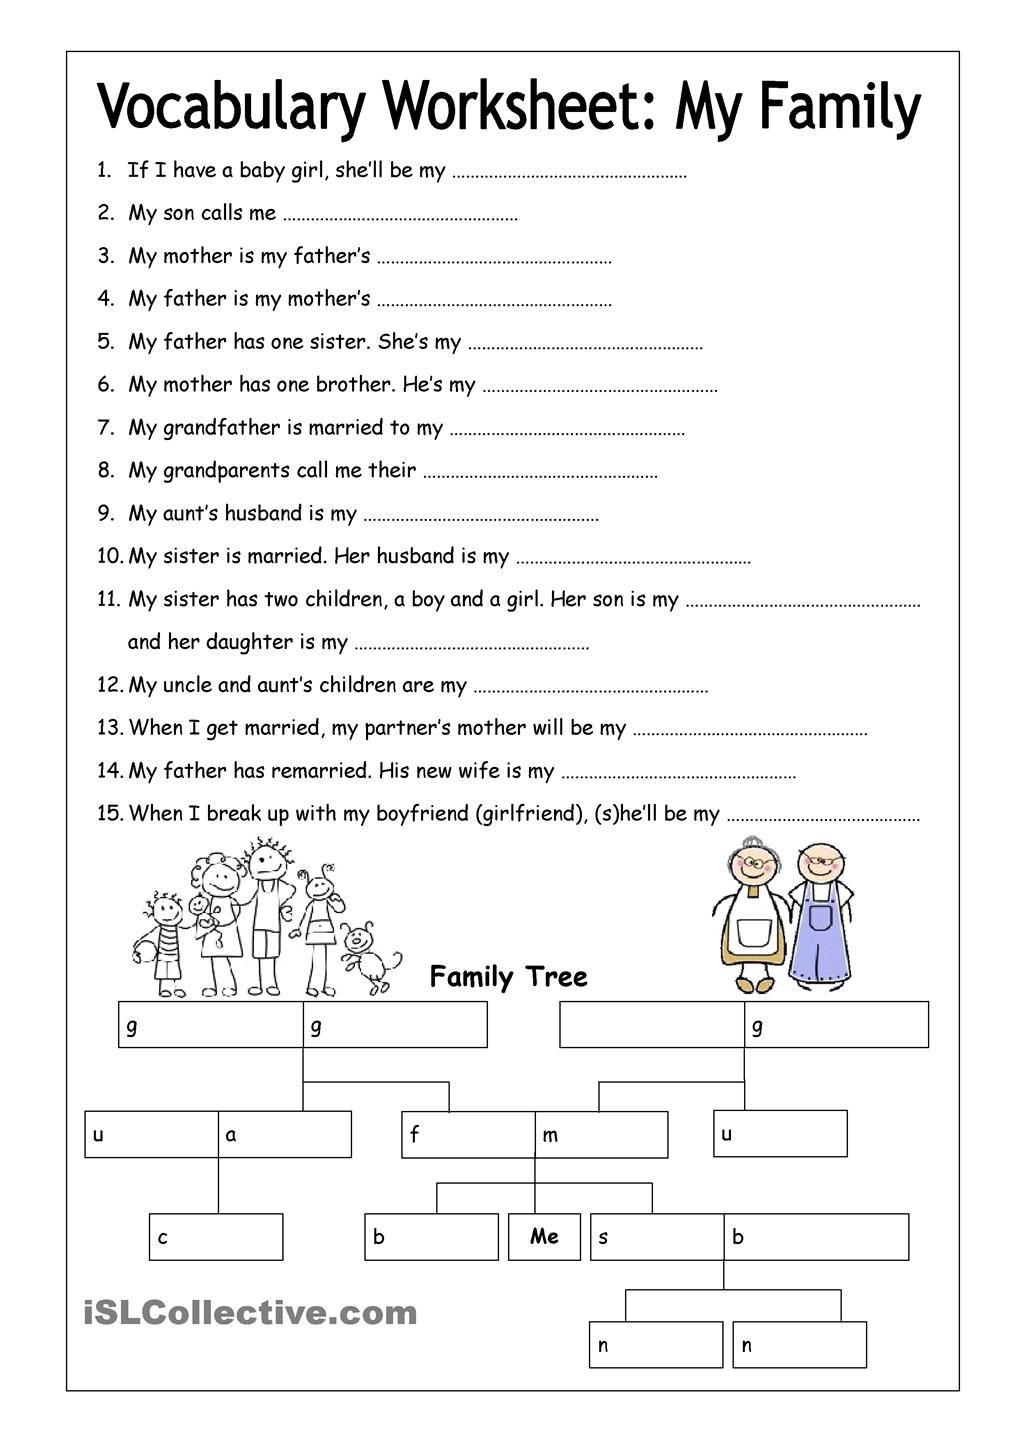 worksheet Family Worksheets family tree worksheet scouts pinterest trees vocabulary my medium